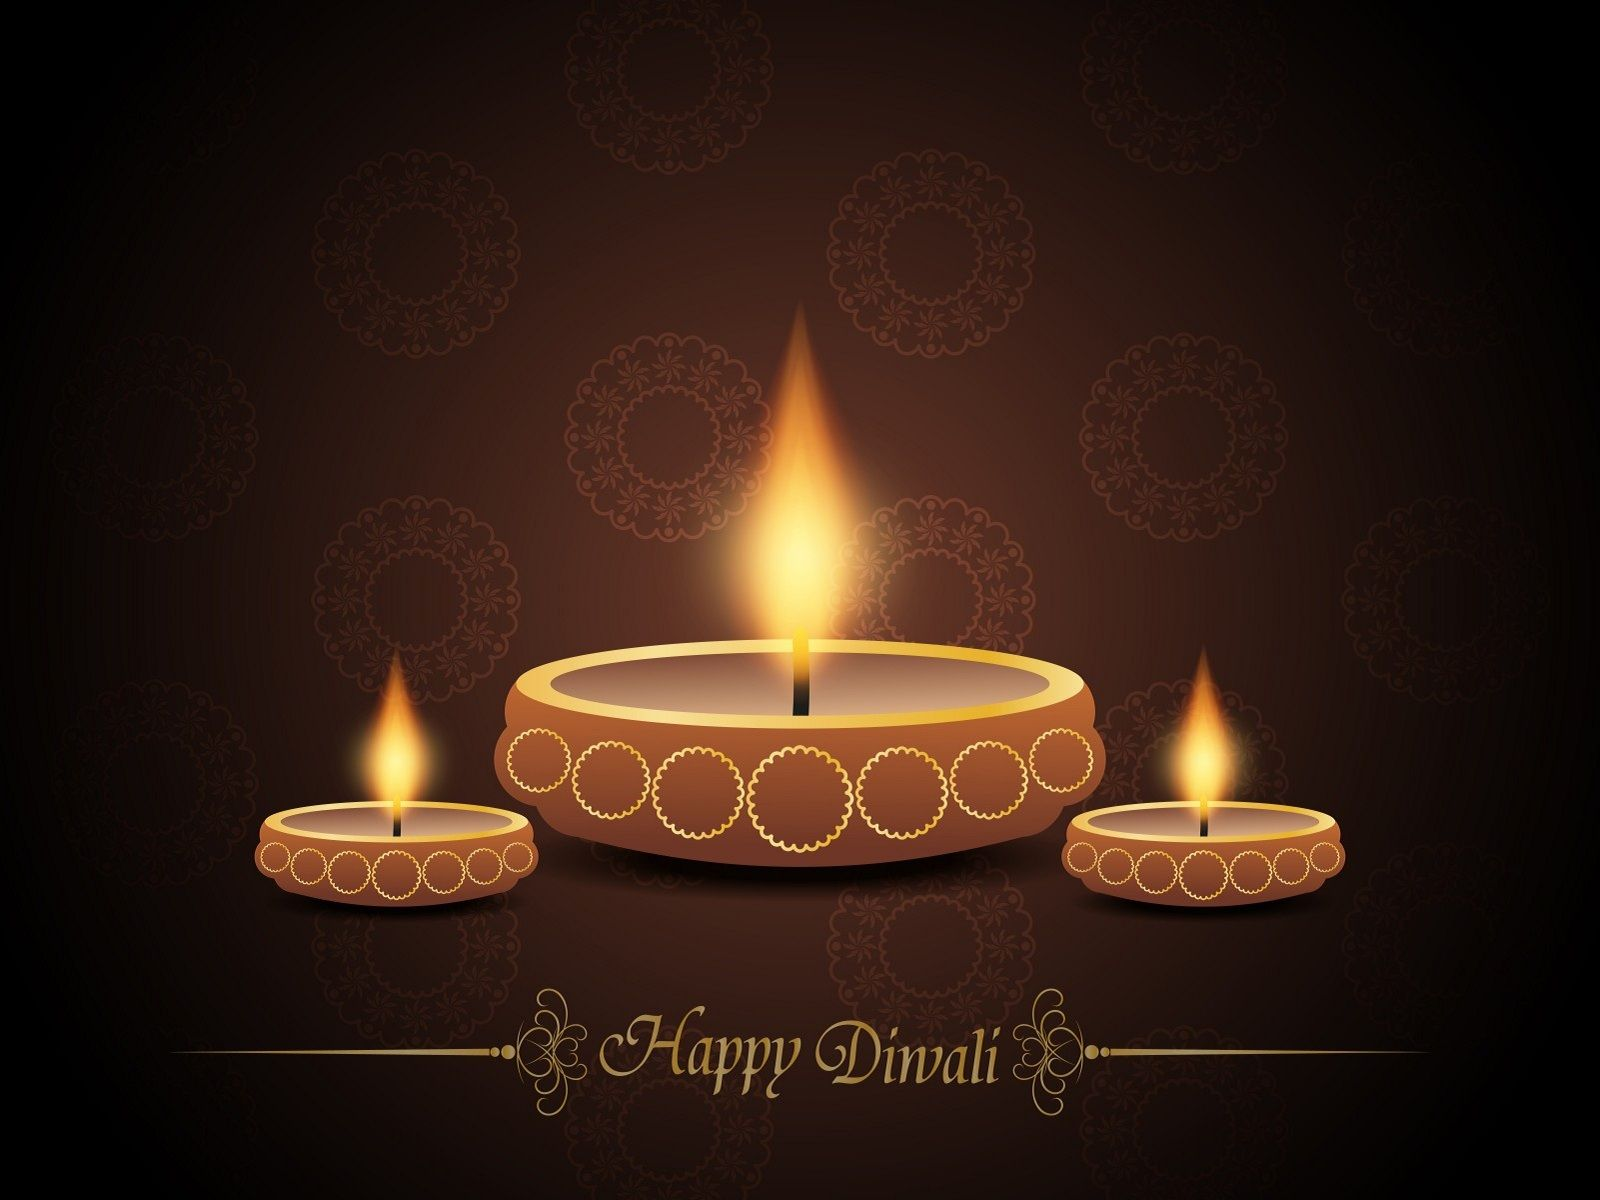 Happy Diwali Greeting Wishes Images Pics 2015 Happy Diwali